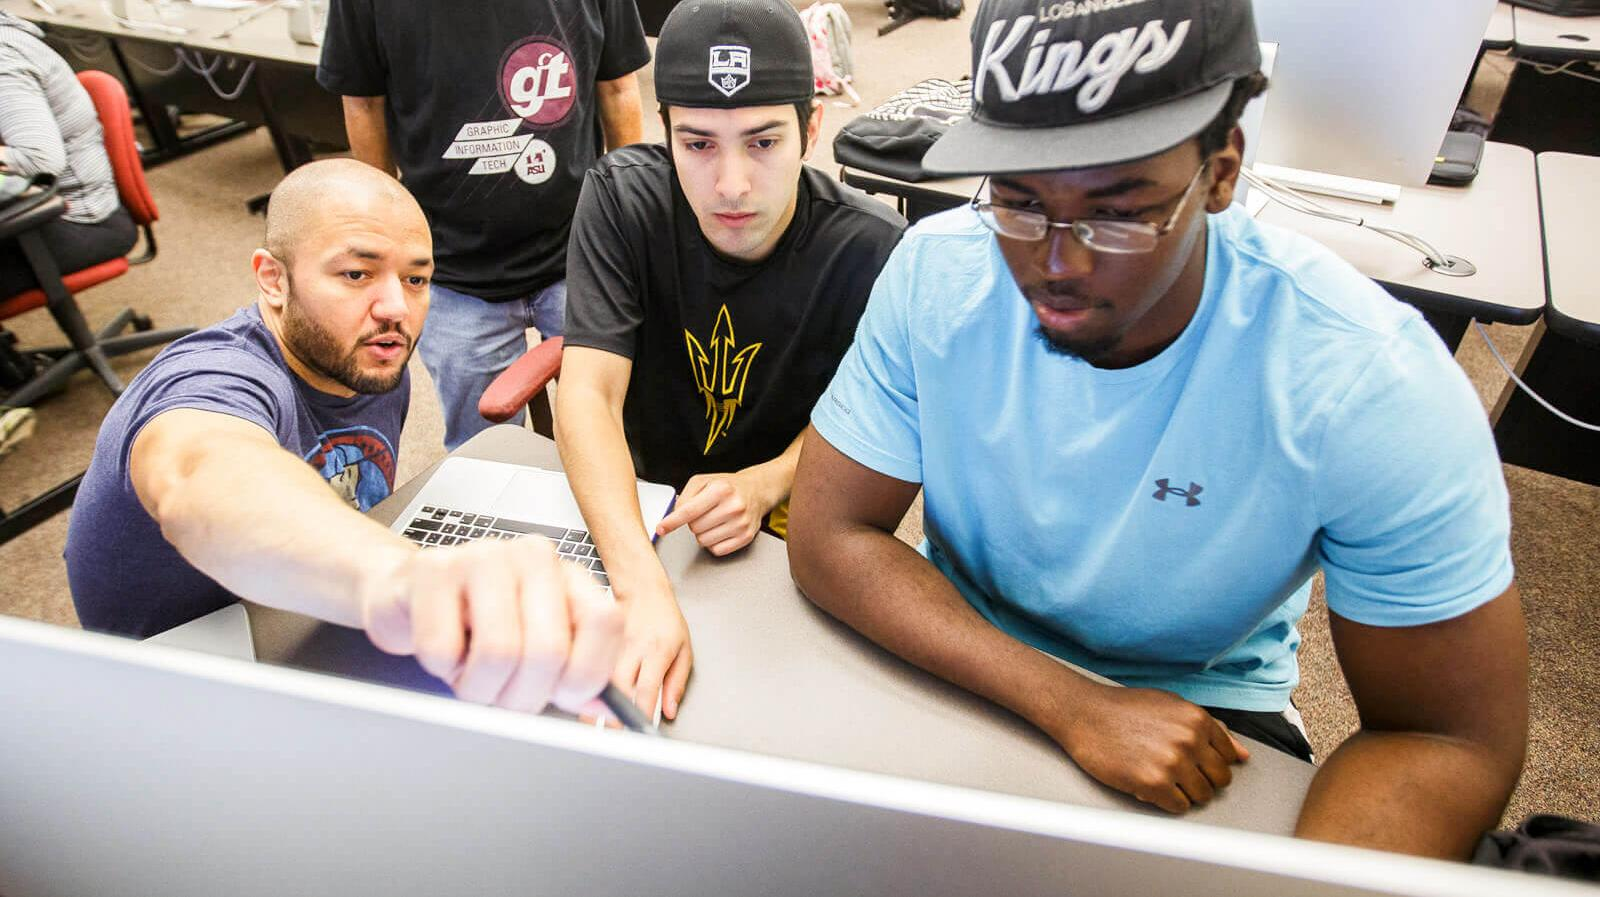 GIT Students work at a computer lab on the Polytechnic campus